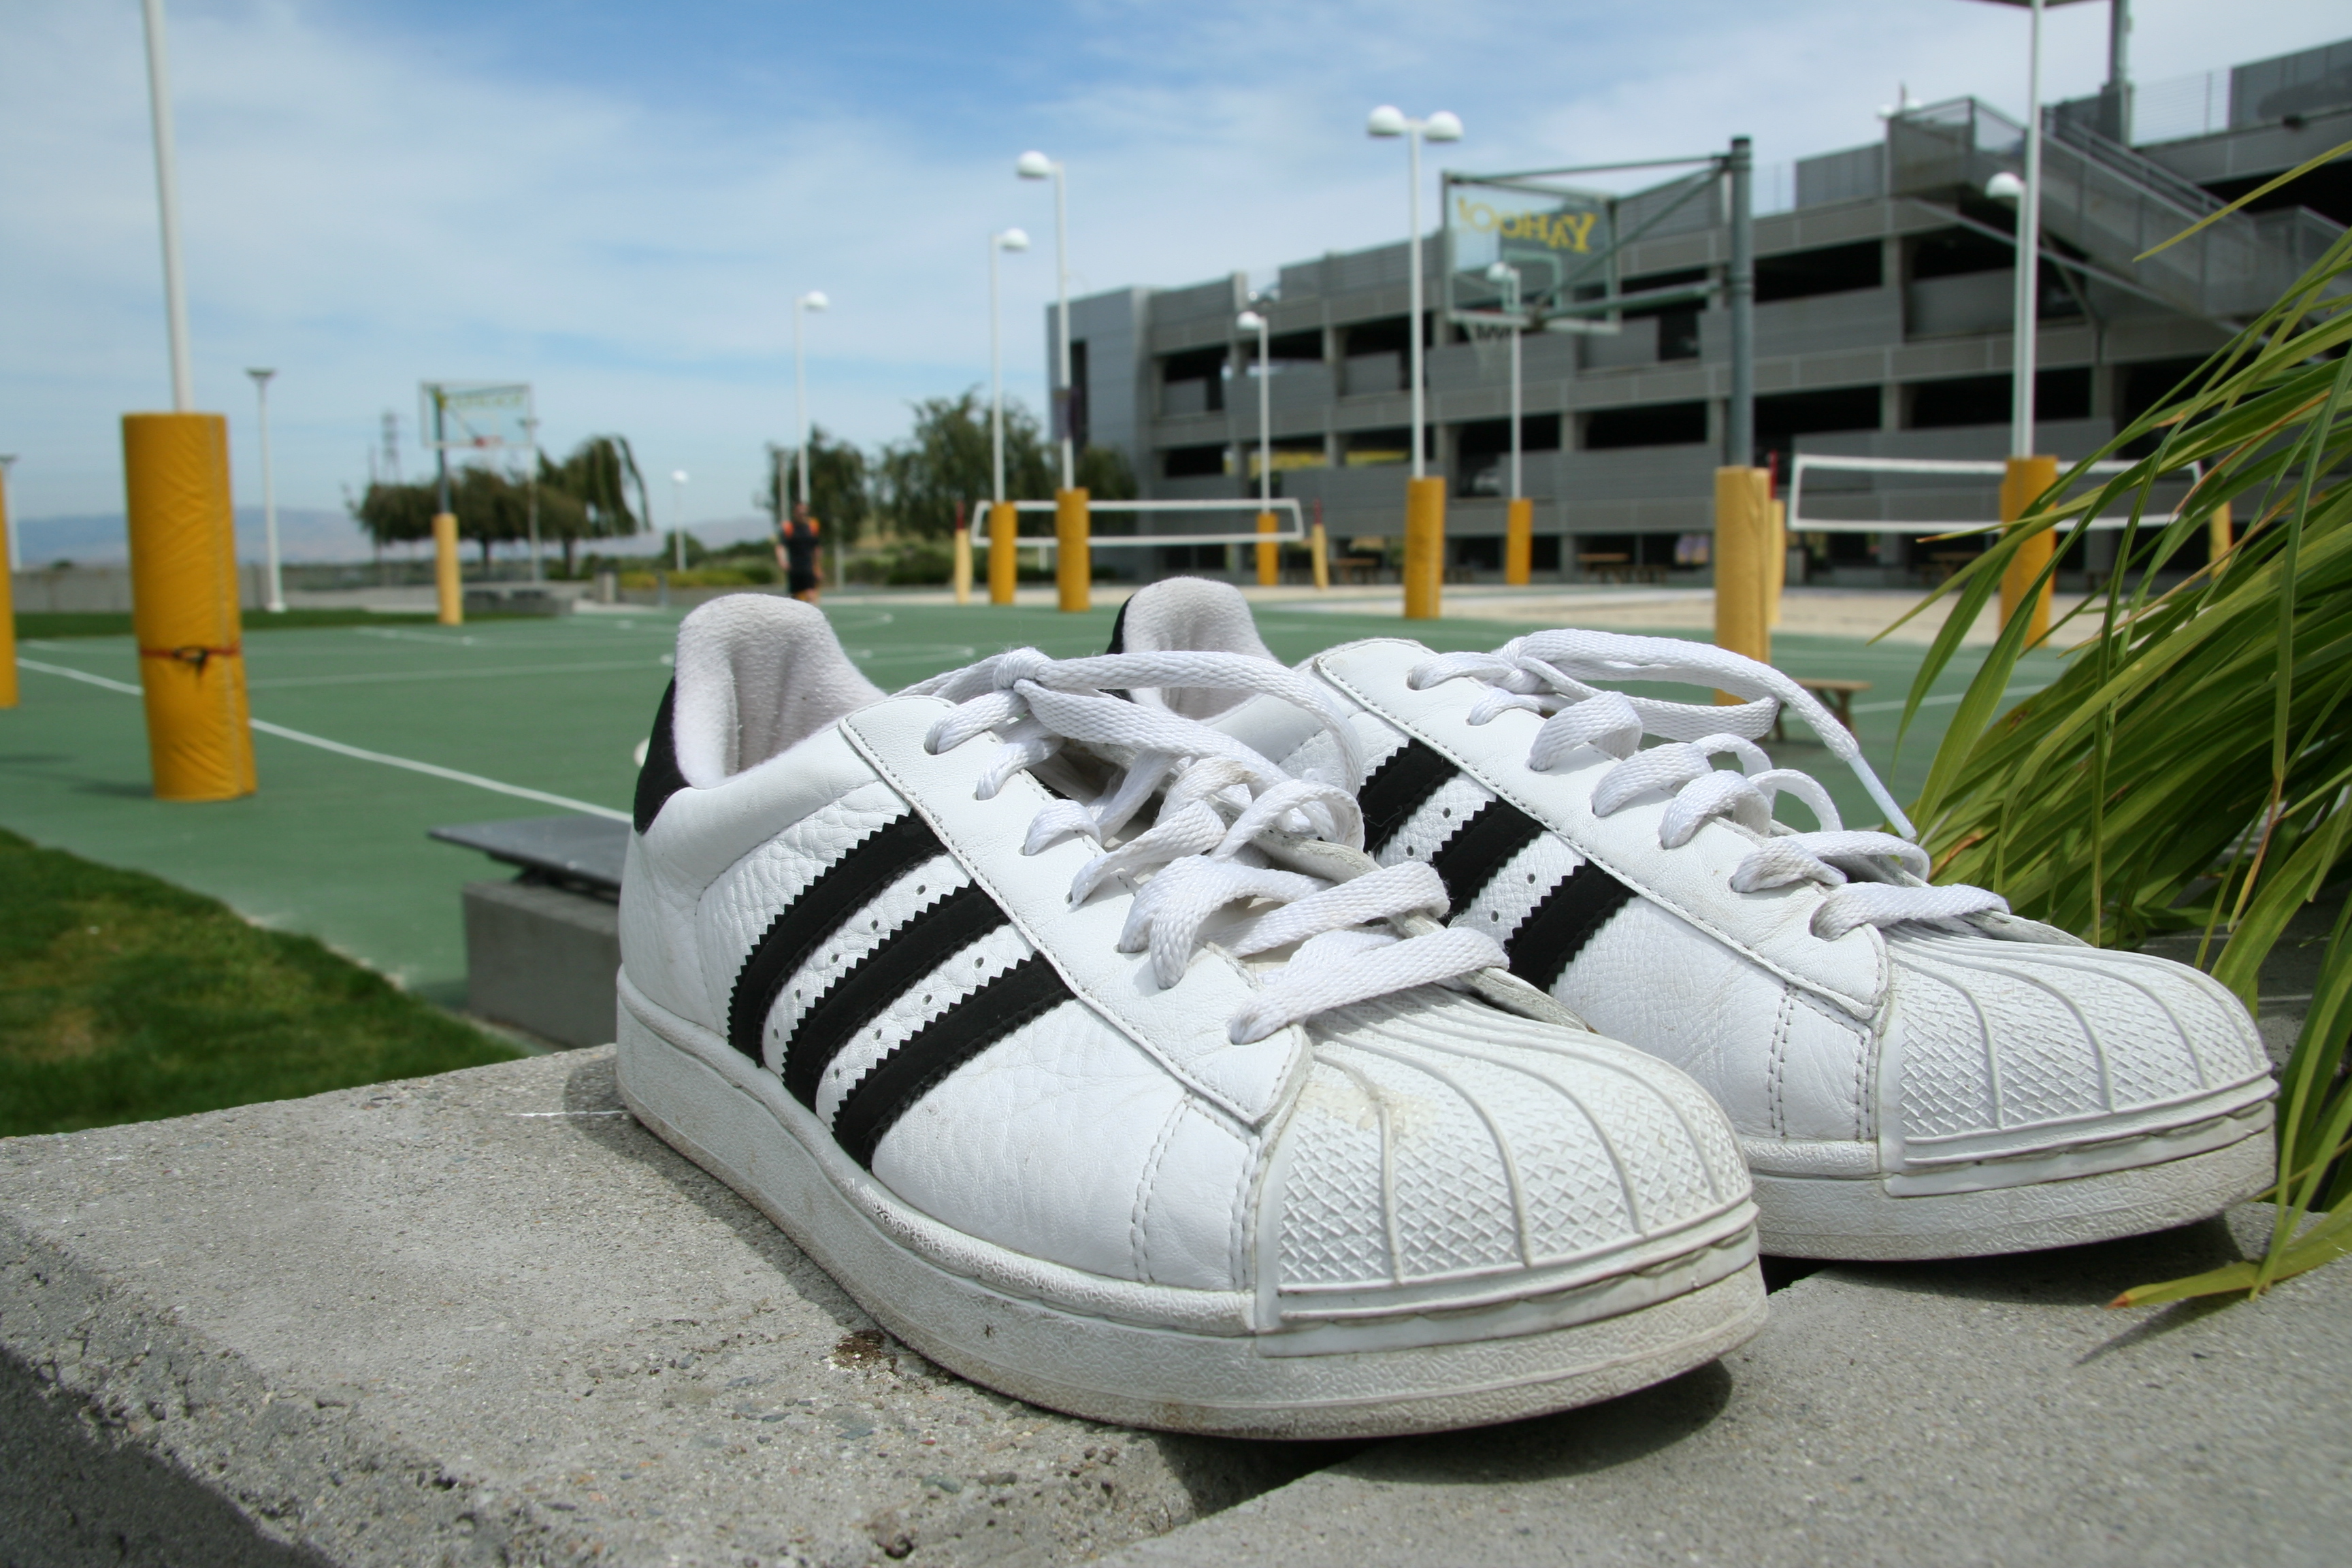 adidas_superstar_shoes_pair